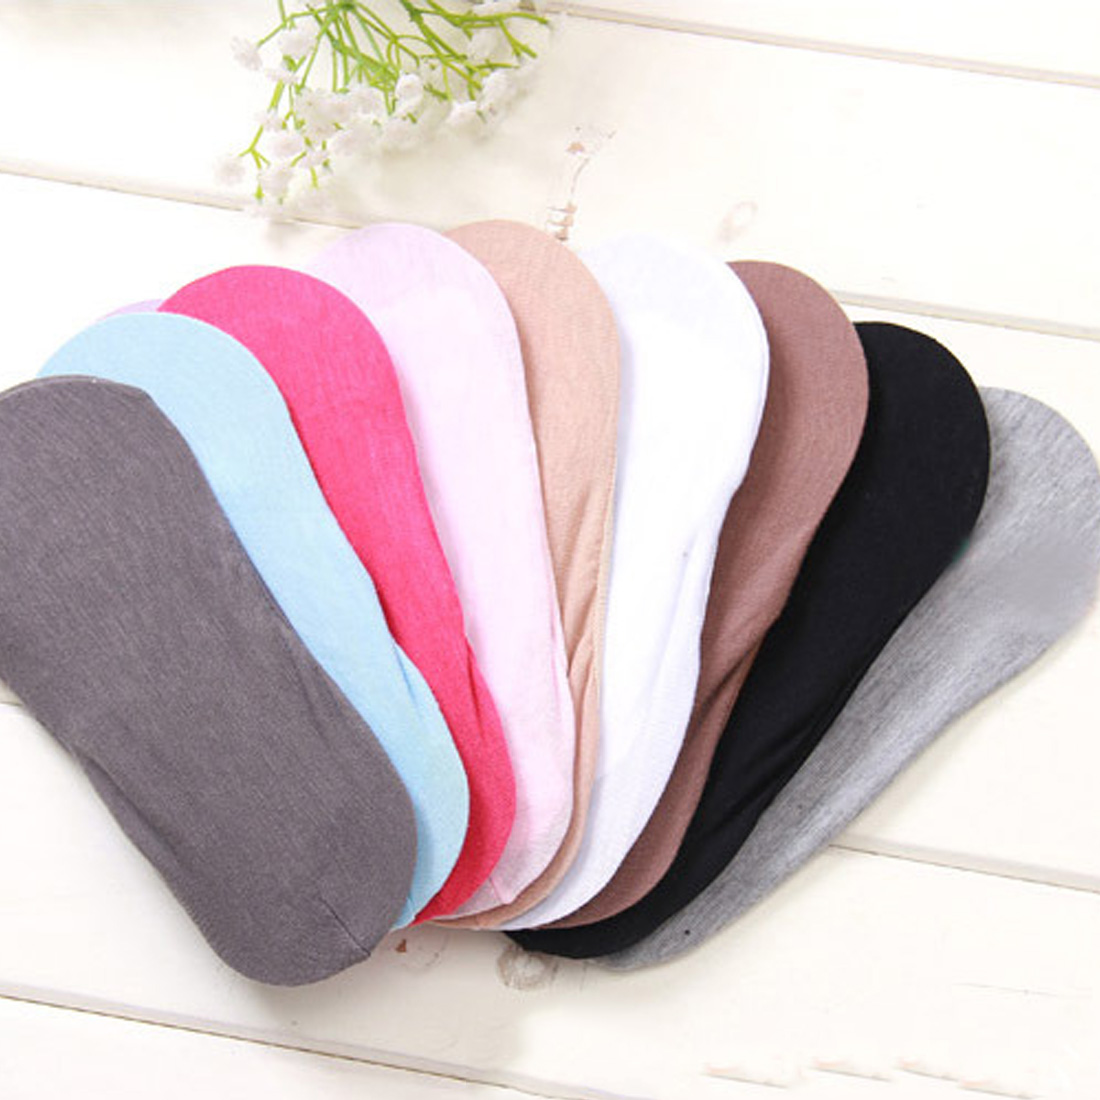 Hot Warm comfortable cotton girl women's socks ankle low female invisible color for girl hosiery 1pair=2pcs